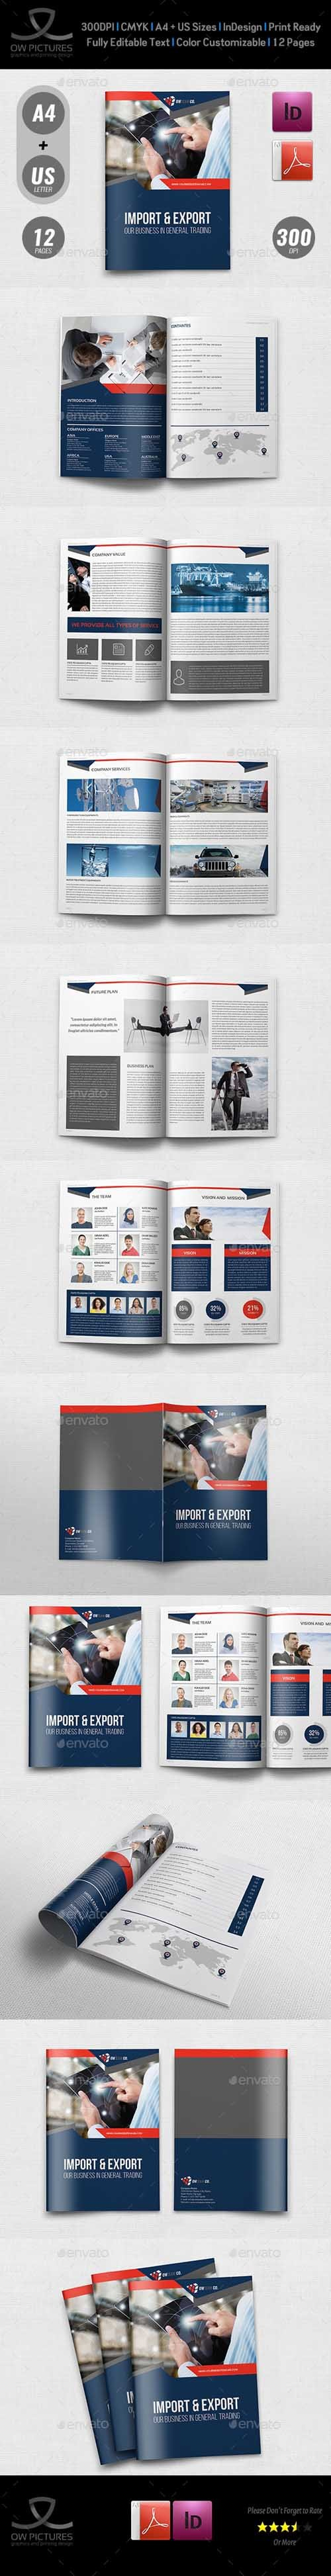 Graphicriver - Company Profile Brochure Template Vol.44 -12 Pages 20178644